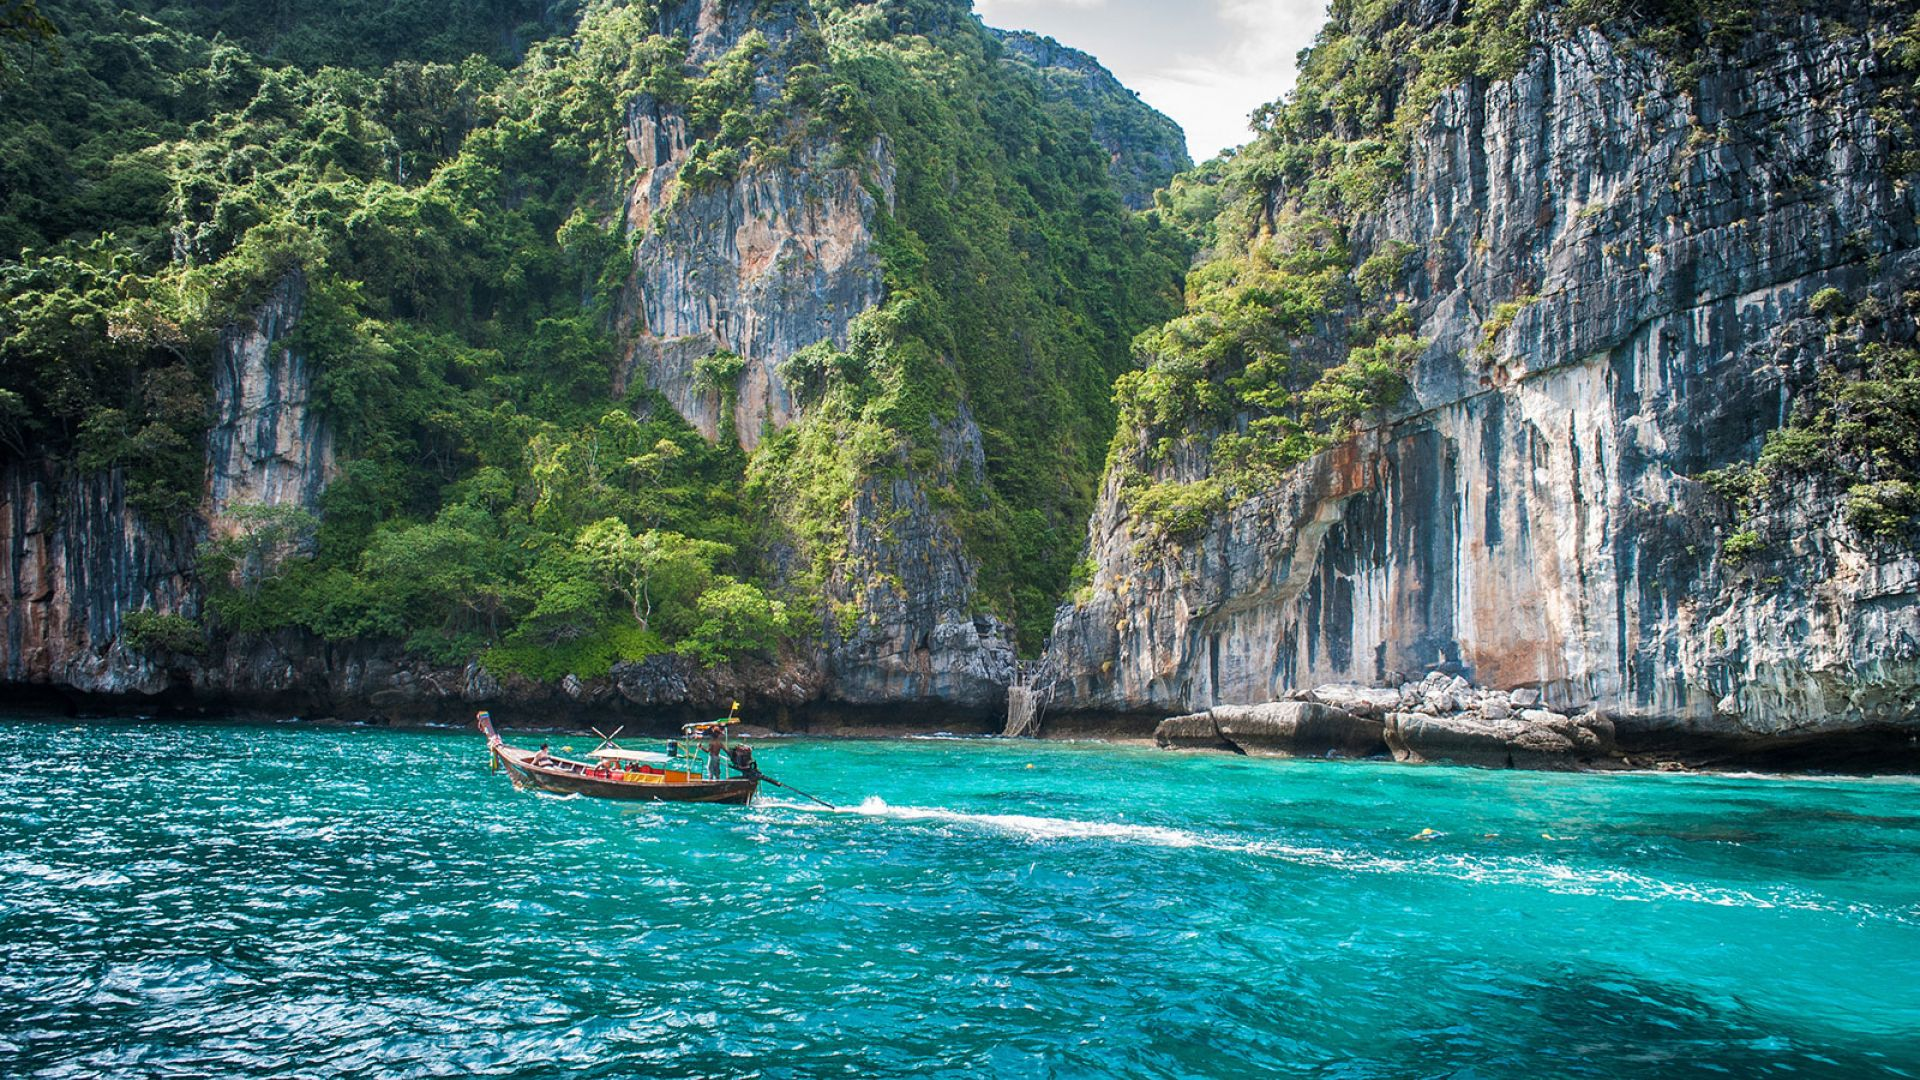 Koh Phi Phi - Bam Boo One day tour by Speed Boat